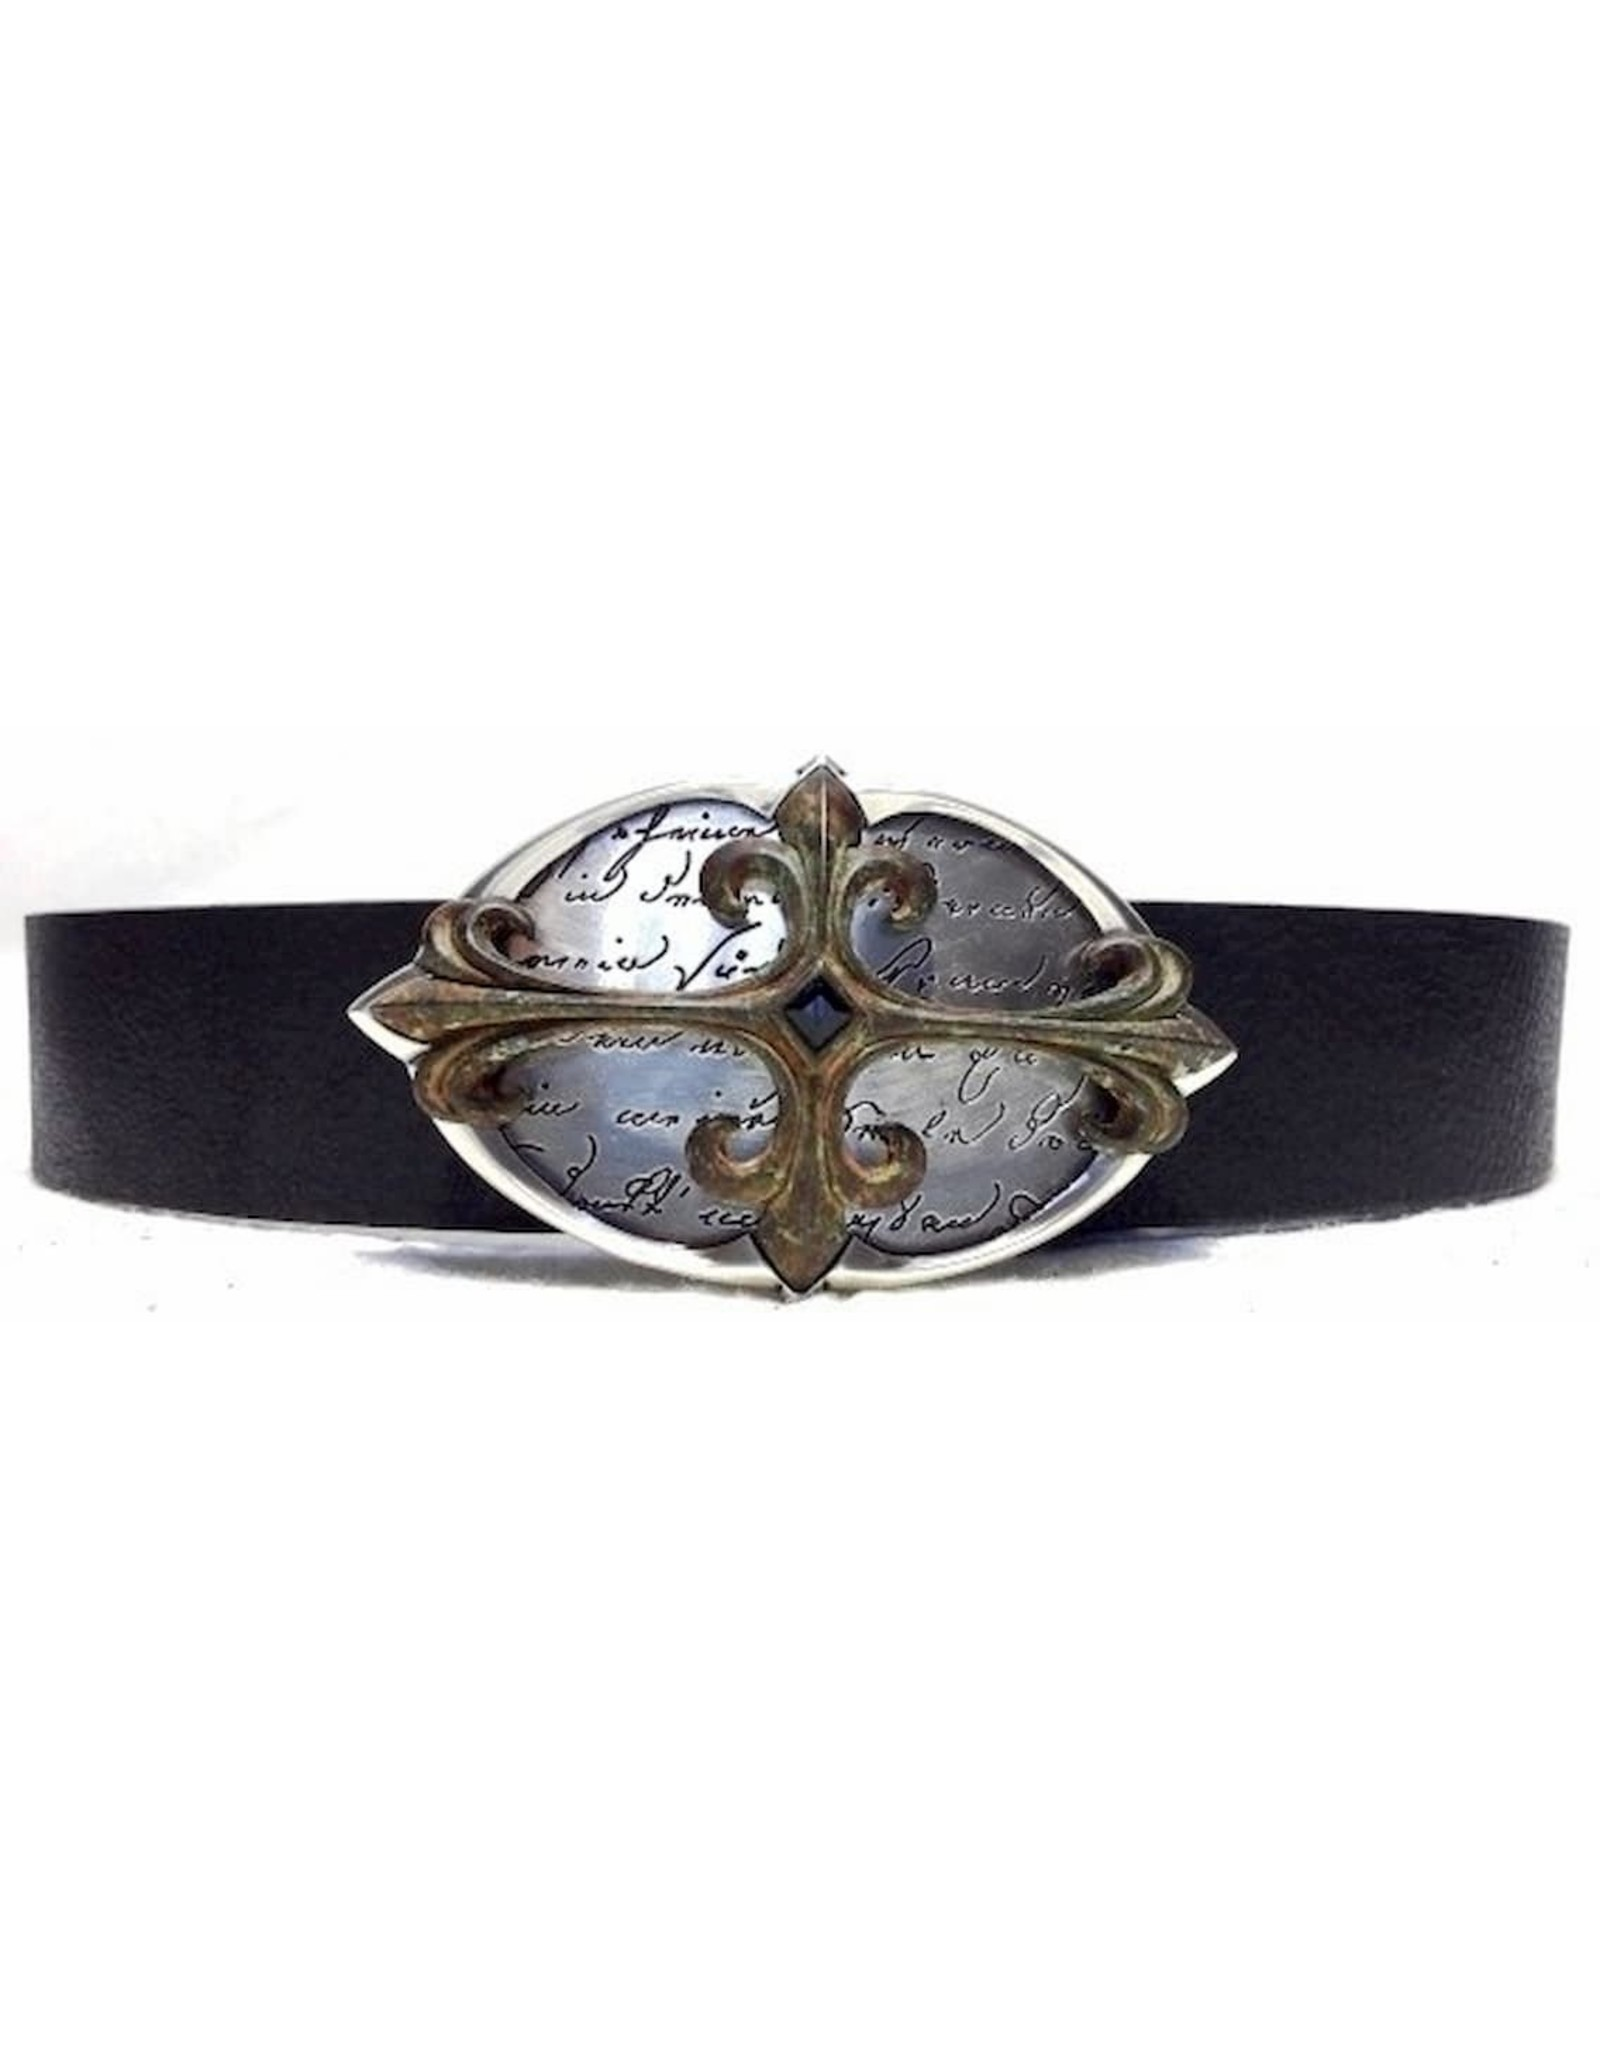 Acco Leather belts and buckles - Leather Belt with Buckle Used Cross2